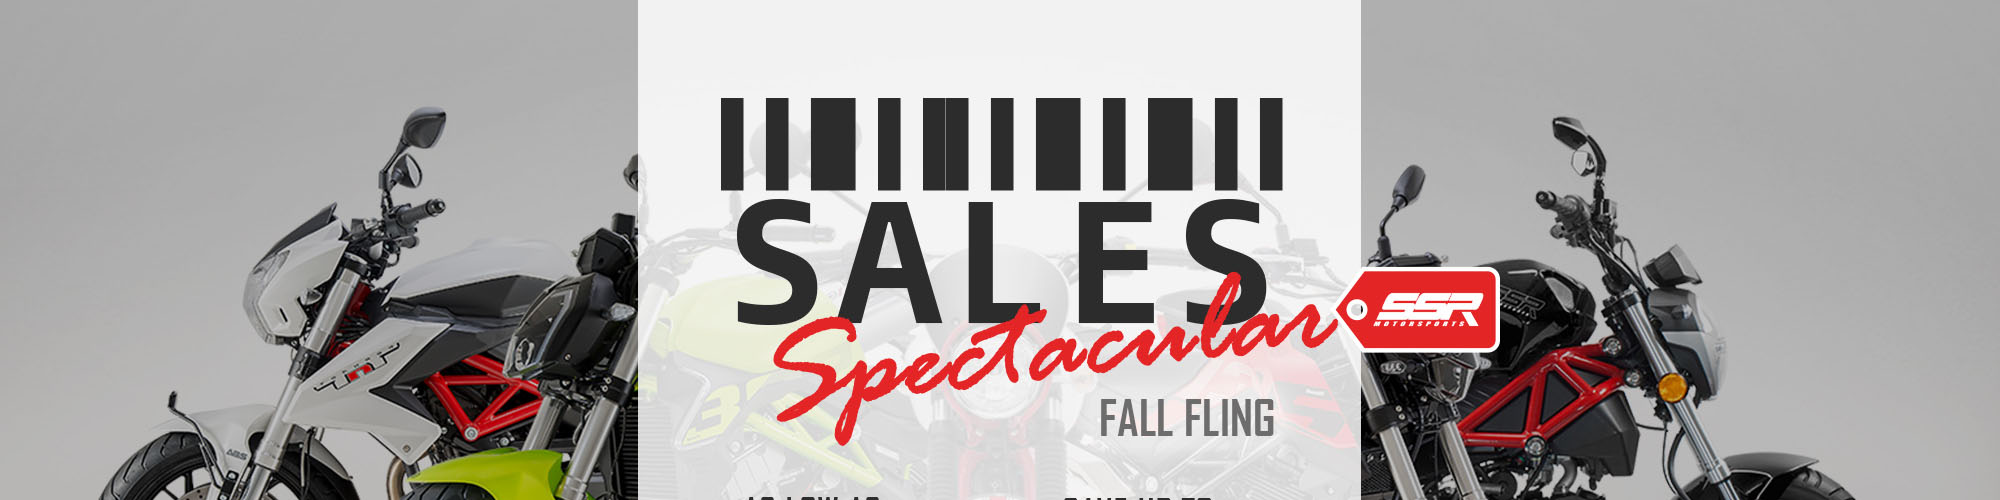 Sales Spectacular Fall Fling